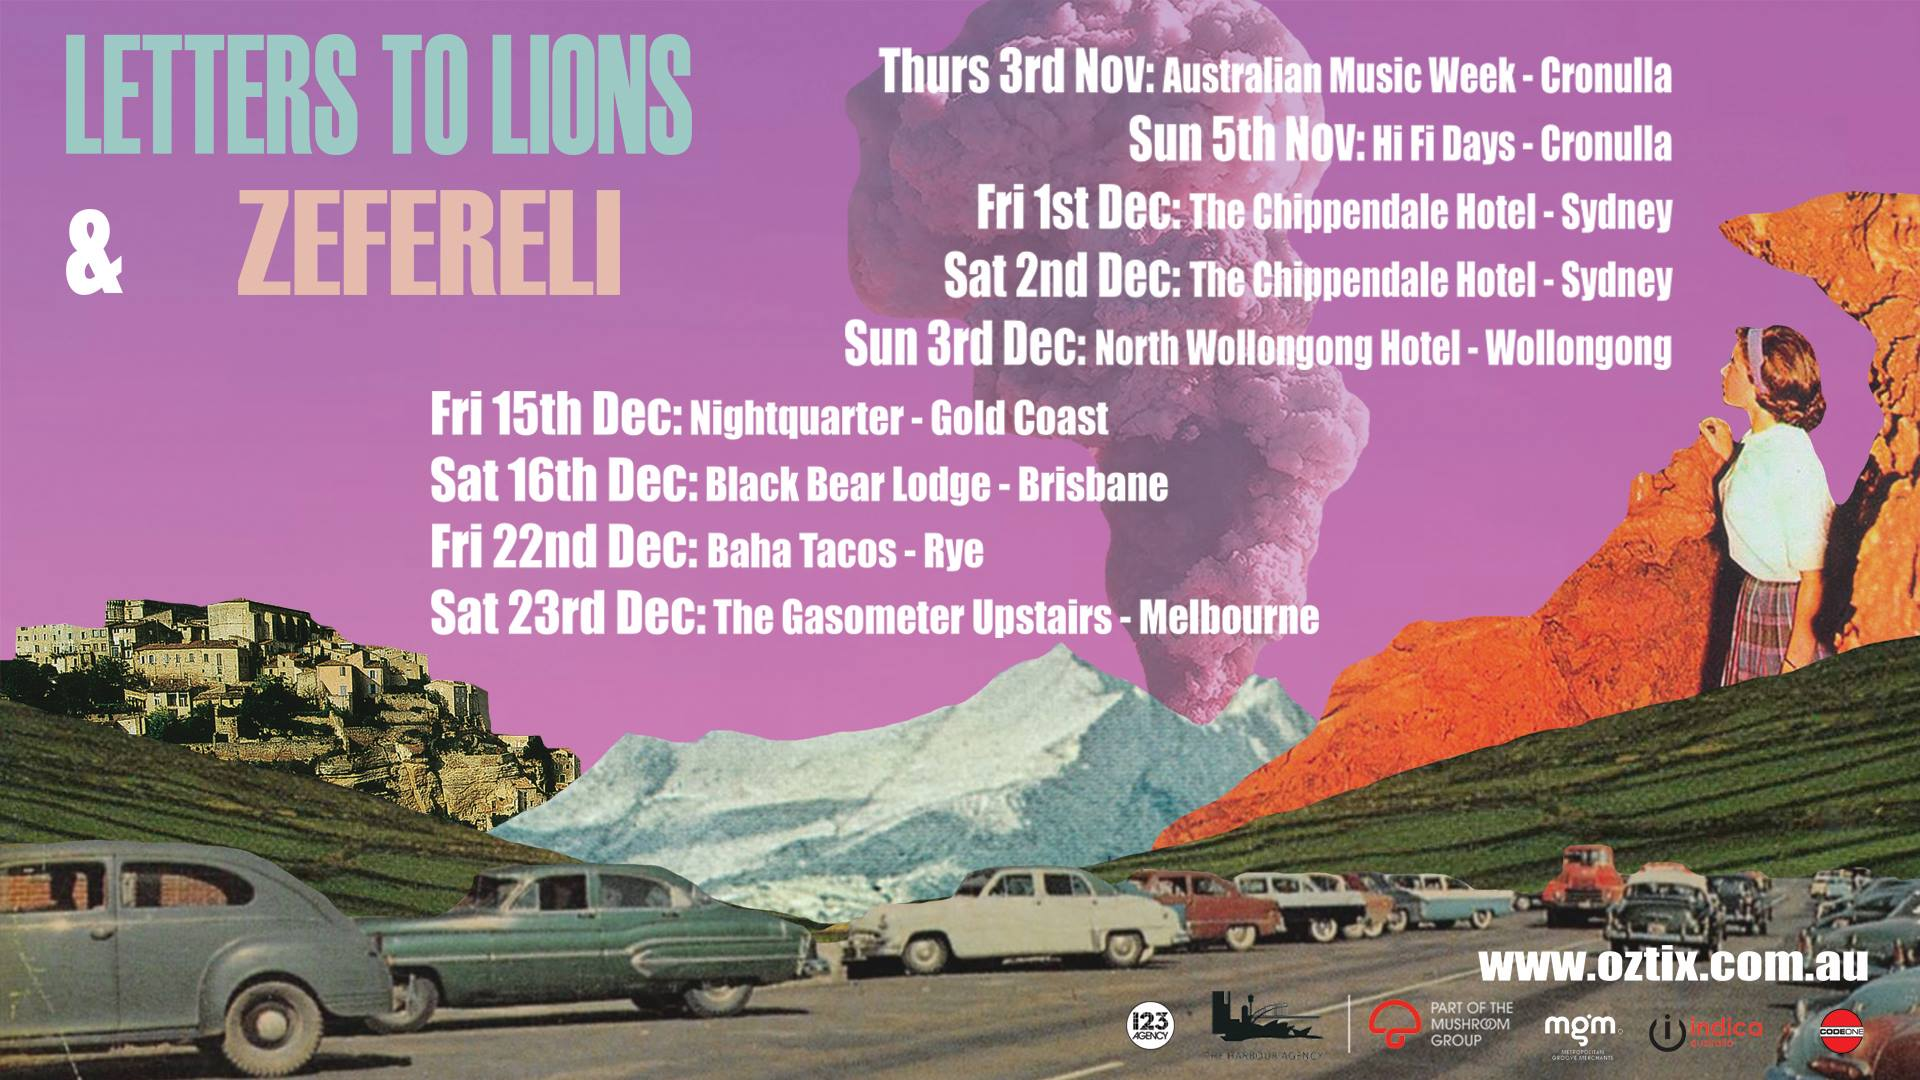 """Letters to Lions and  Zefereli are teaming up for a co-headline tour, set to spice up your summer. Hitting the road for a set of very special shows along Australia's East Coast.  LETTERS TO LIONS A true to life rock and roll band, the energy of friends crashing in vans, live shows full of piss and vinegar and sacrificing the body. Sprawling guitar melodies and aggressive, ambitious vocals, described as a concoction of swooning aggression and dance pop sensibility with comparisons to Kings of Leon, WU LYF, last Dinosaurs and Foals; the boys may just become your new favorite indie band.  ZEFERELI Zefereli (aka Alistar Richardson) is a DIY kind of guy. as his former band The Cairos faded amongst bad vibes and fake smiles Alistar began Zefereli: a creative outlet to just do what he felt like when he felt like, not as a money maker, but as a cathartic ode to the self. """"It was fun, it was real, it was easy and it made me realise why the hell I was doing music."""" Part of this renewal was the creative paring with fellow musician Clea. Alistar has recorded her more recent music and Clea performs and collaborates with Zefereli.  + Georgia June"""